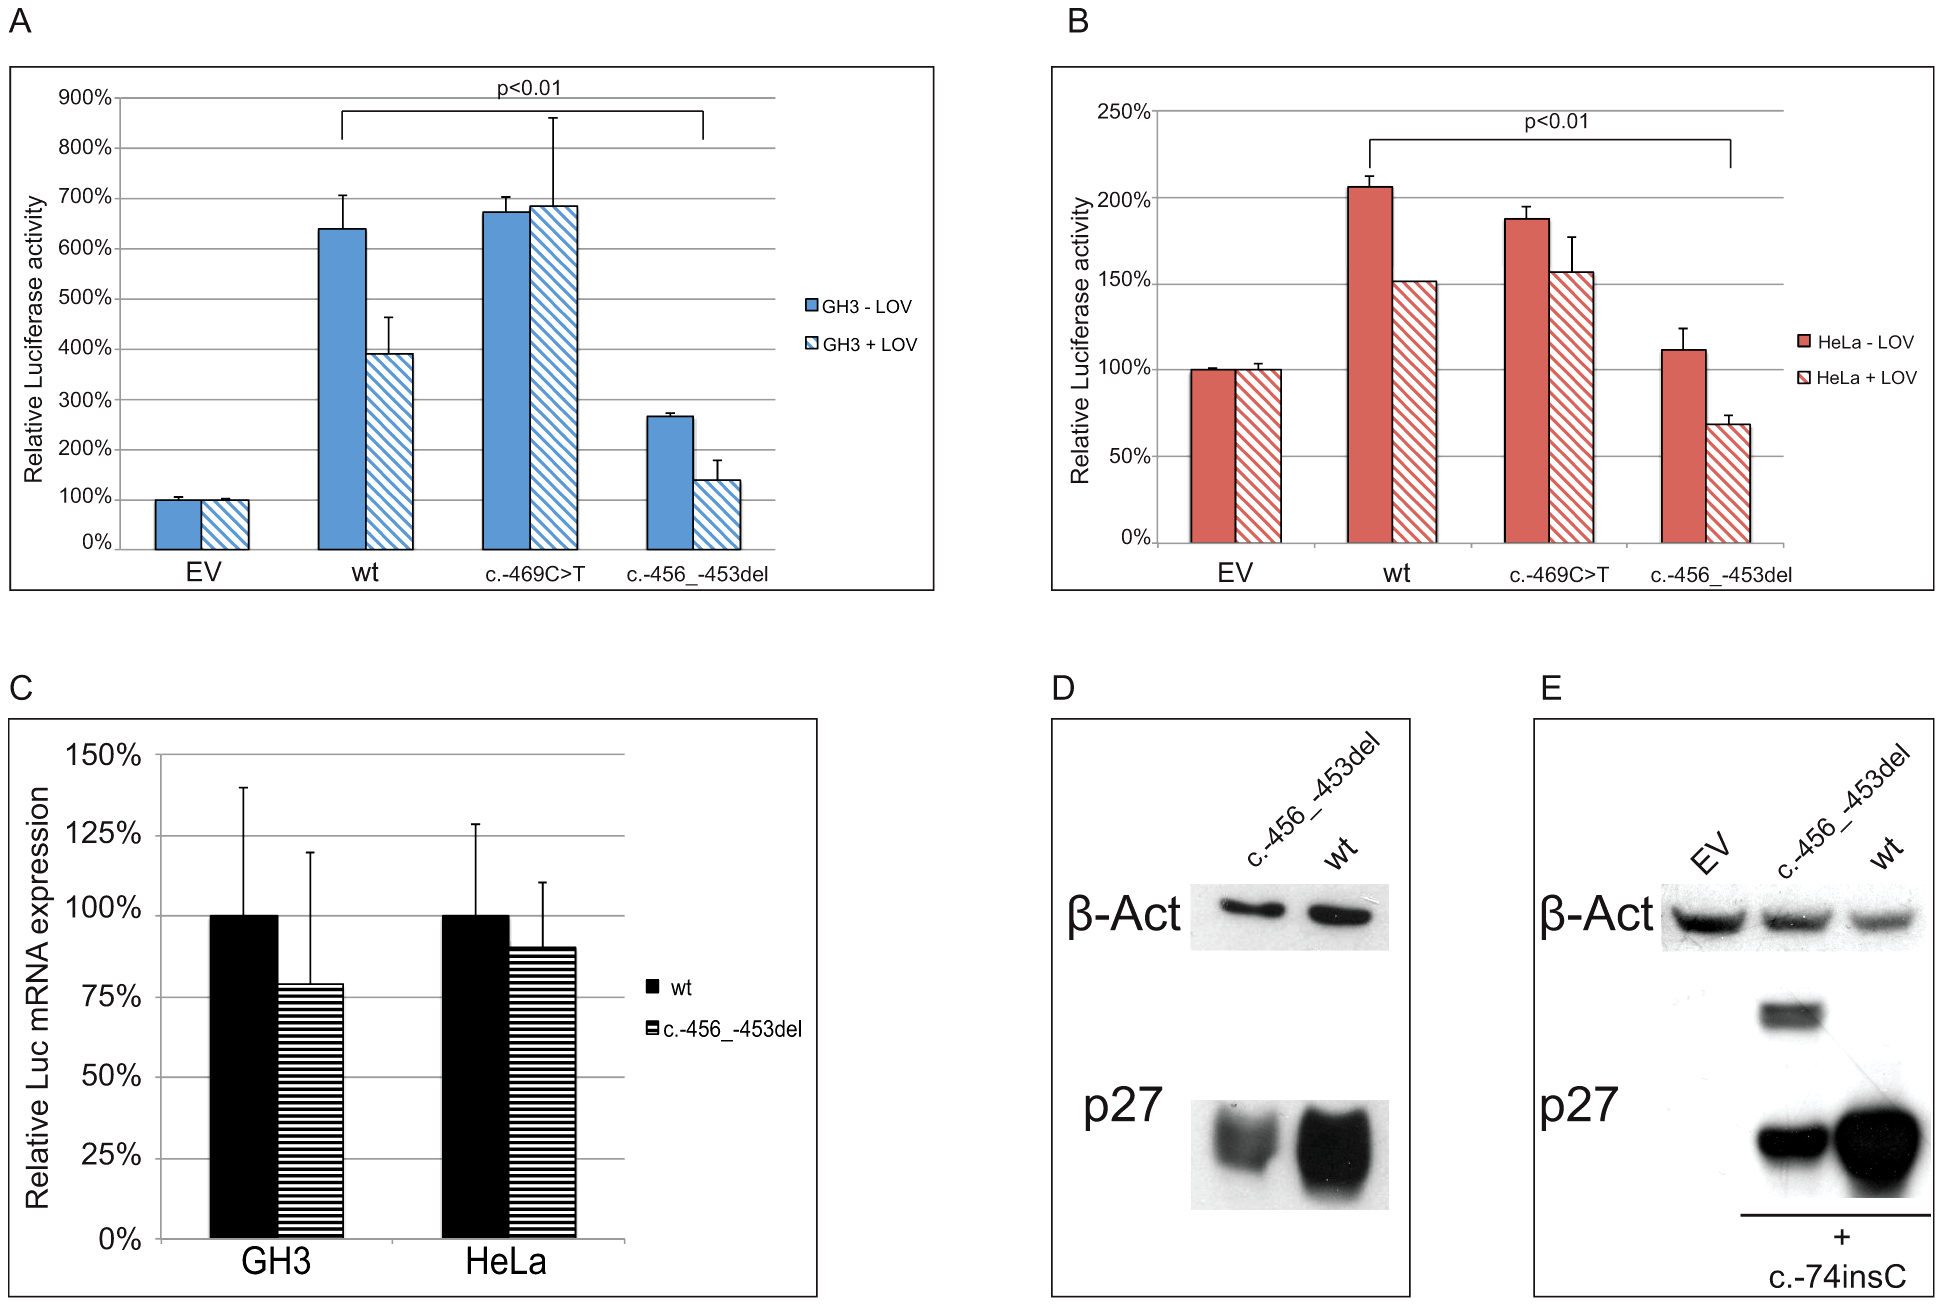 The c.-456_-453delCCTT affects protein translation by reducing reinitiation.